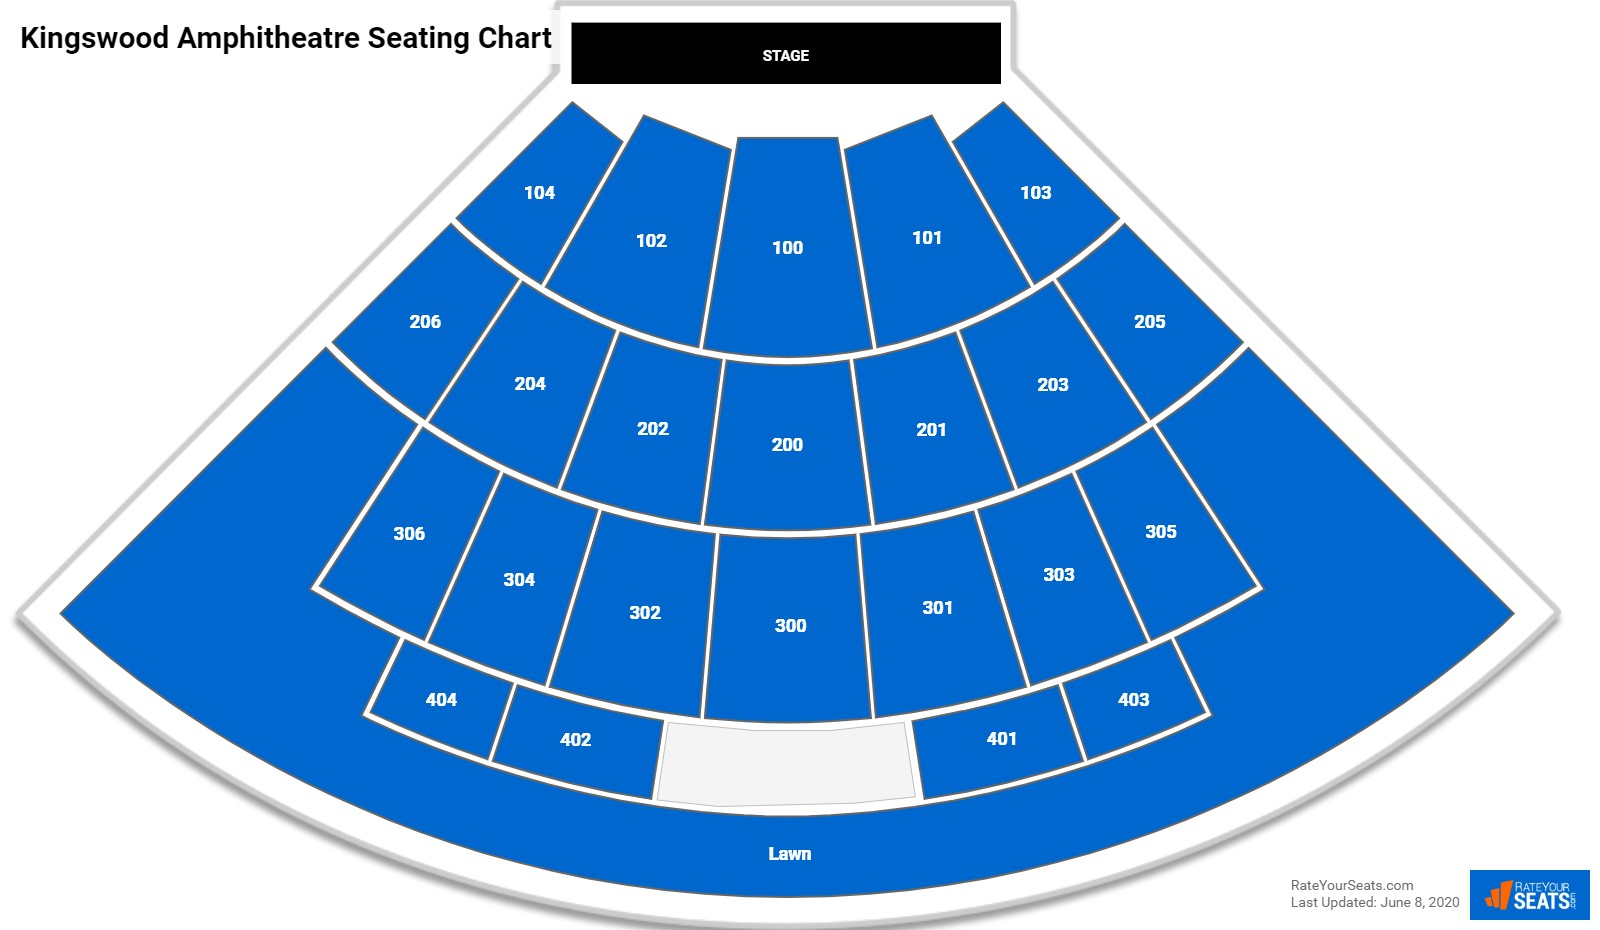 Kingswood Amphitheatre Seating Chart